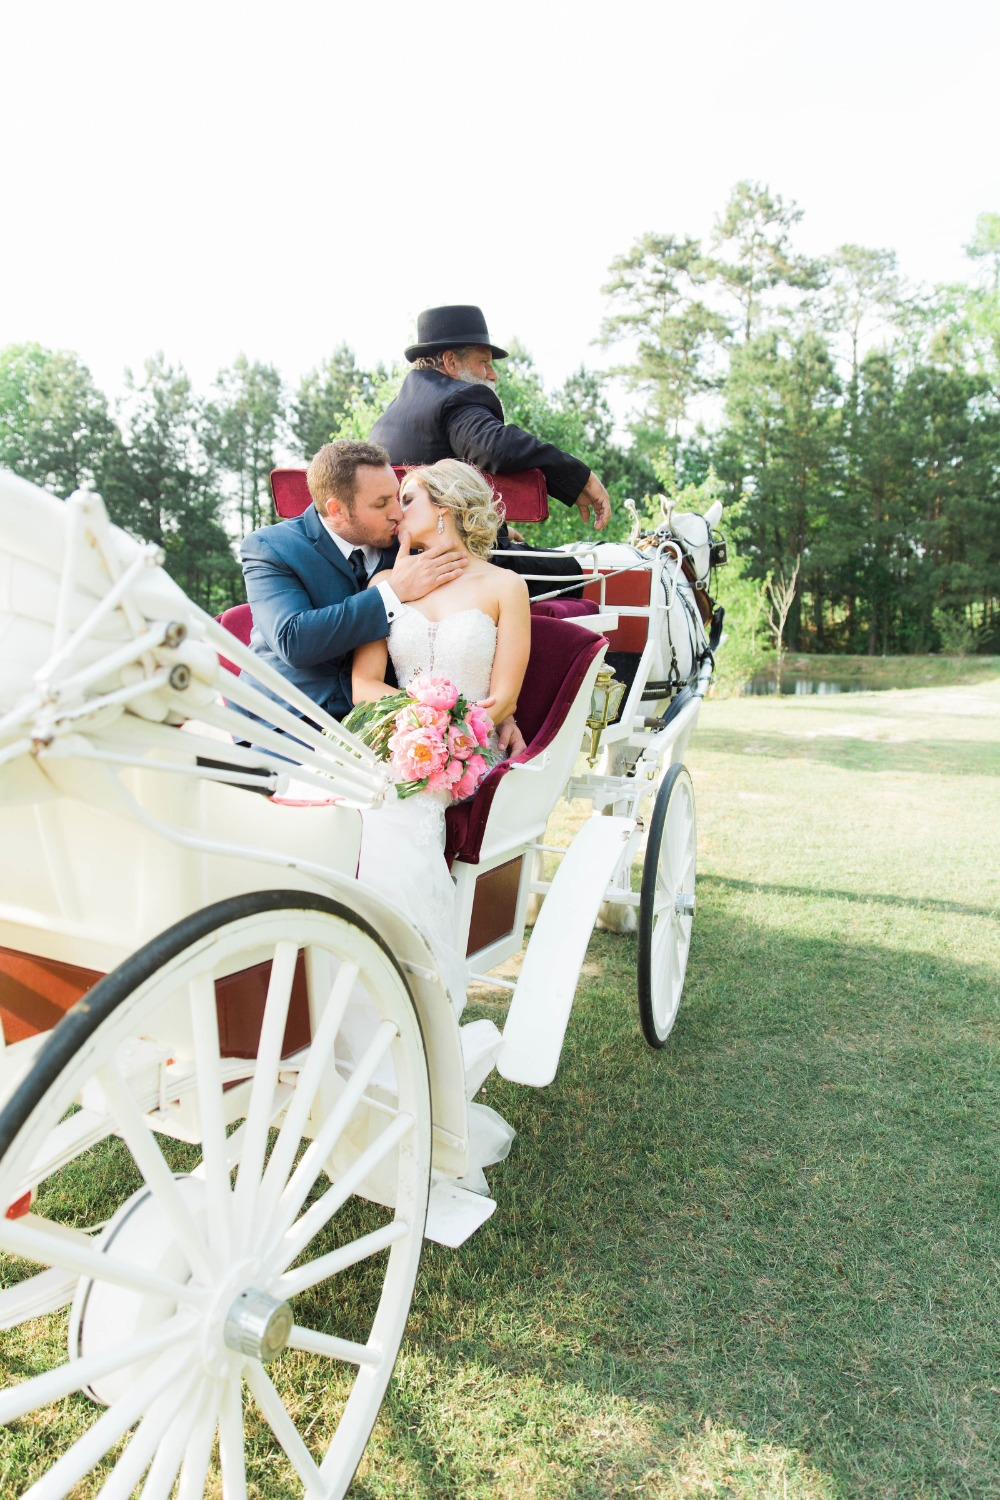 Wedding carriage kiss